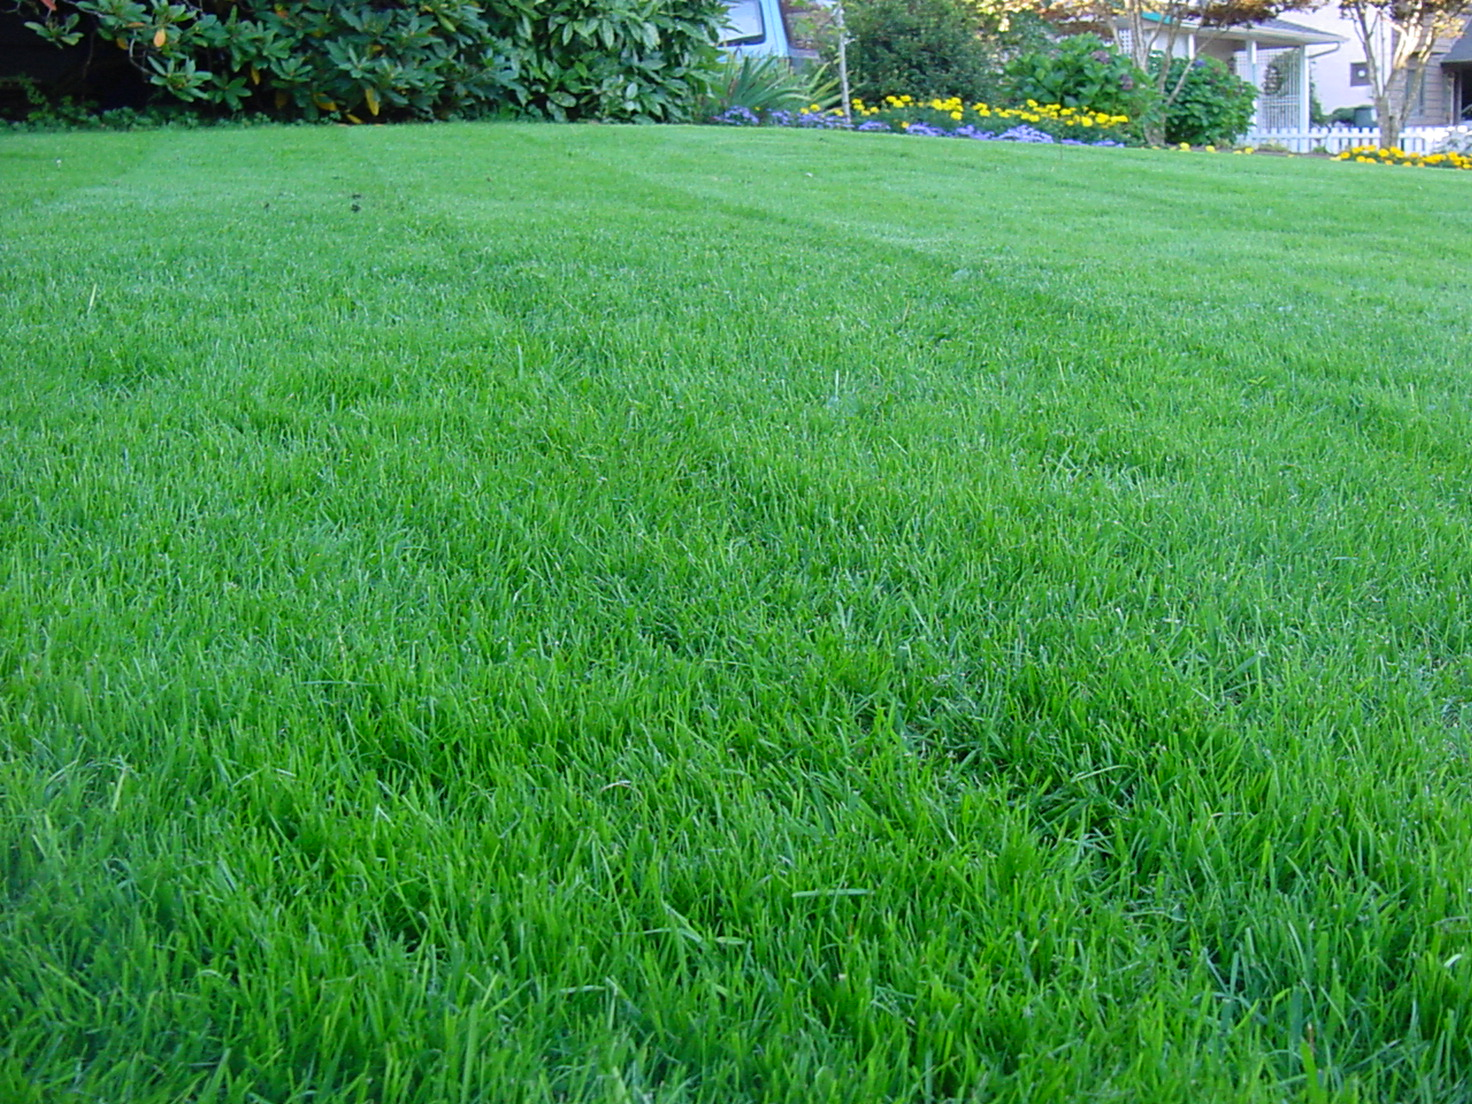 Lawn care the ecological way organic edible gardens llc for Best garden maintenance